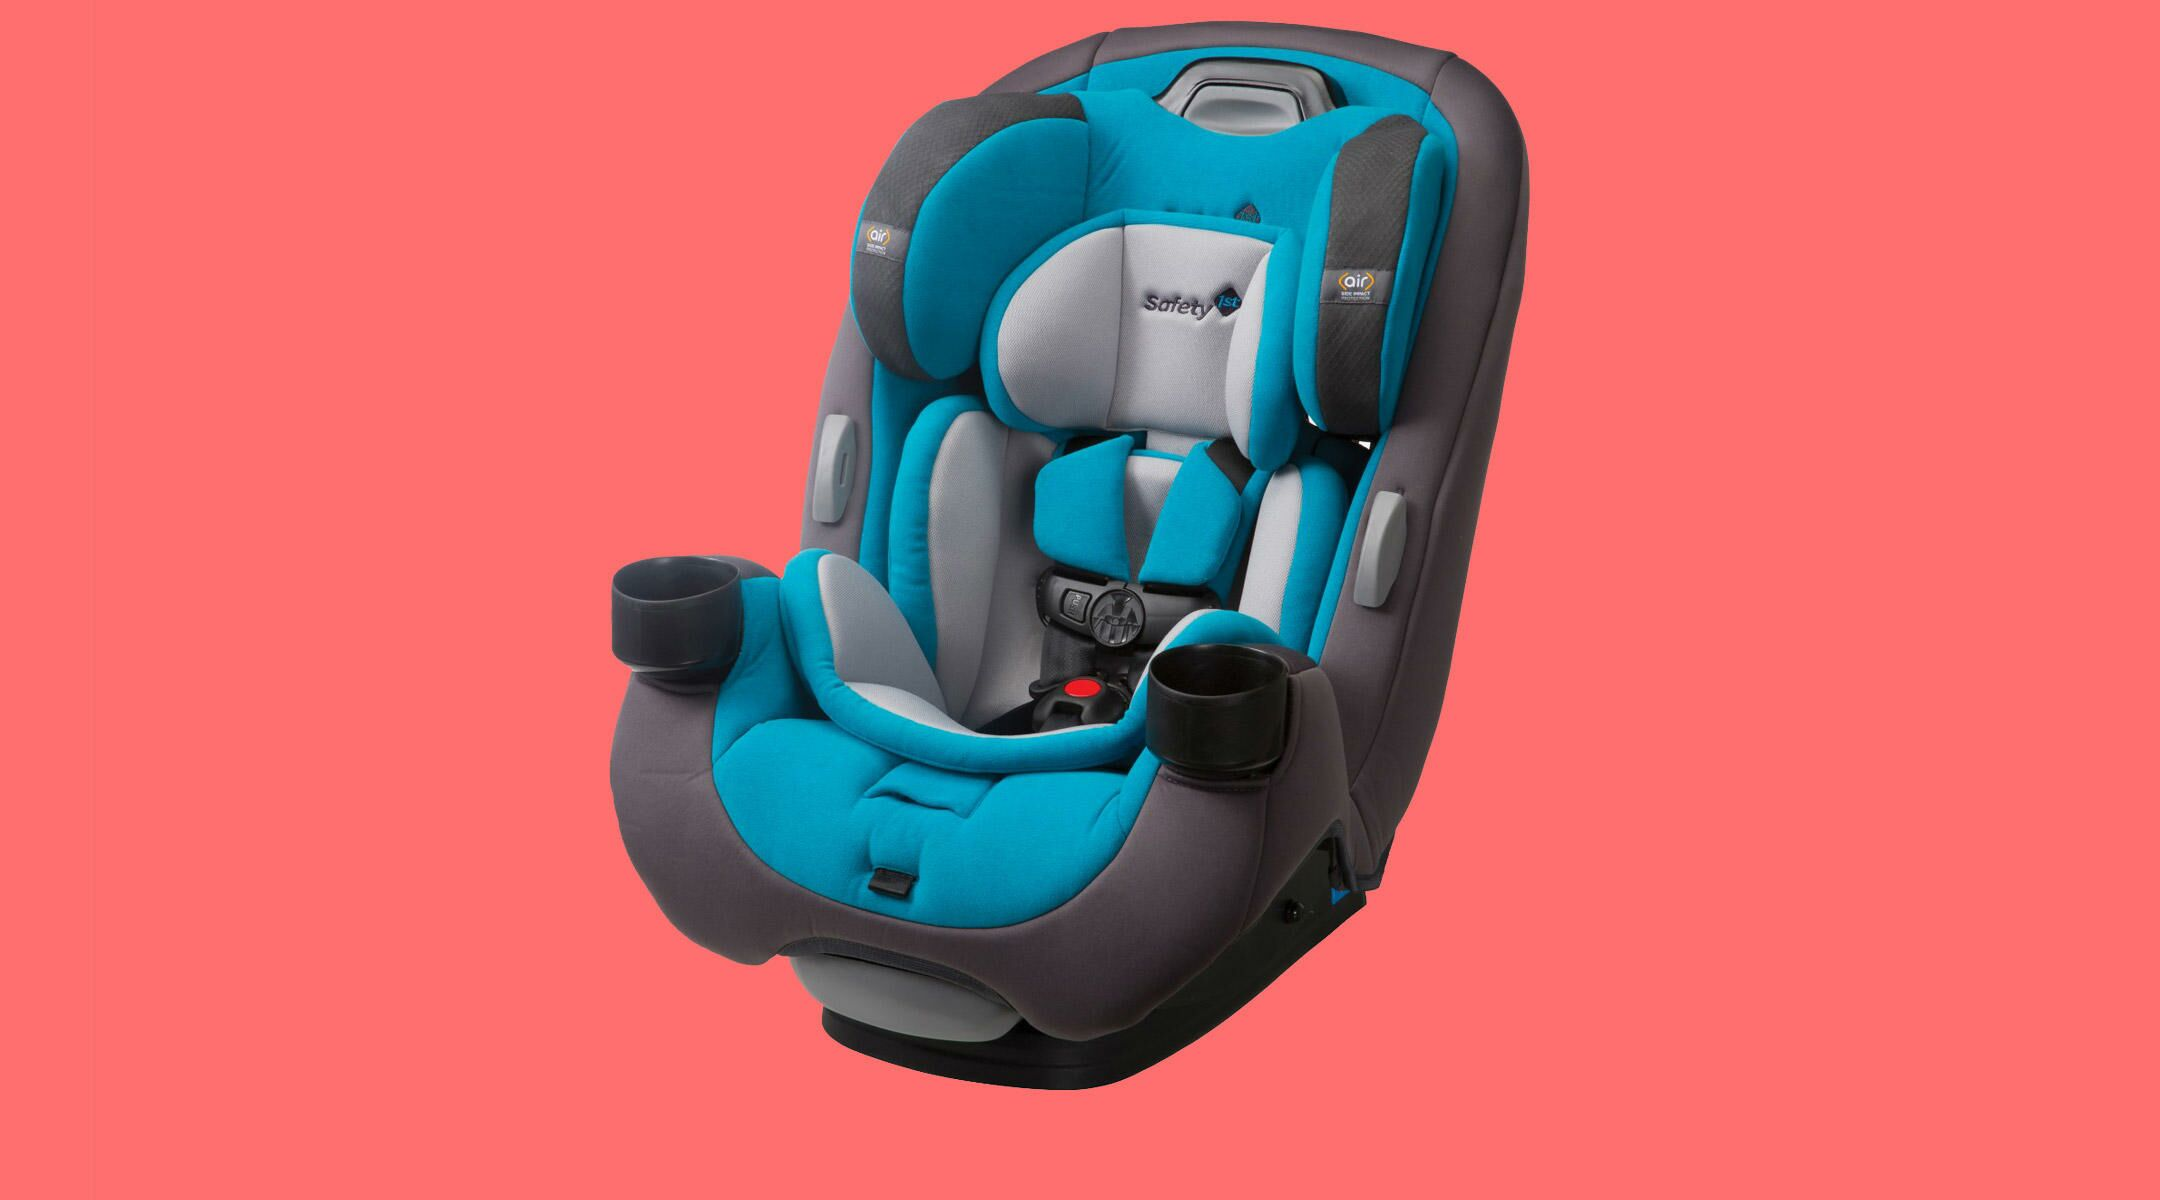 Safety 1st Grow And Go Air 3 In 1 Convertible Car Seat Review